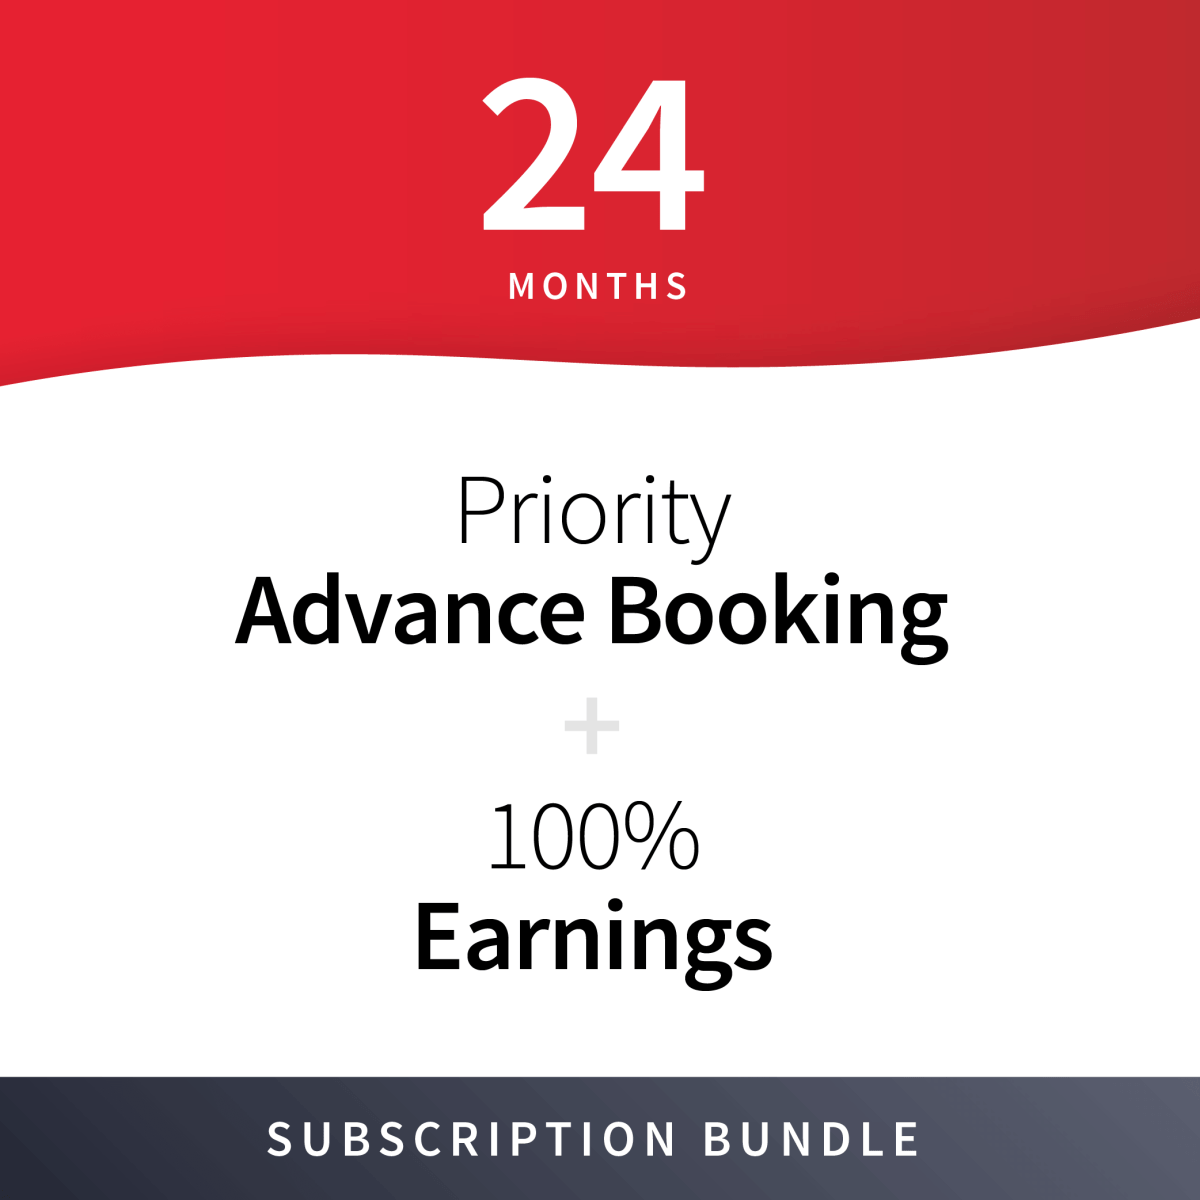 100% Earnings + Priority Advance Booking Subscription Bundle - 24 Months 14